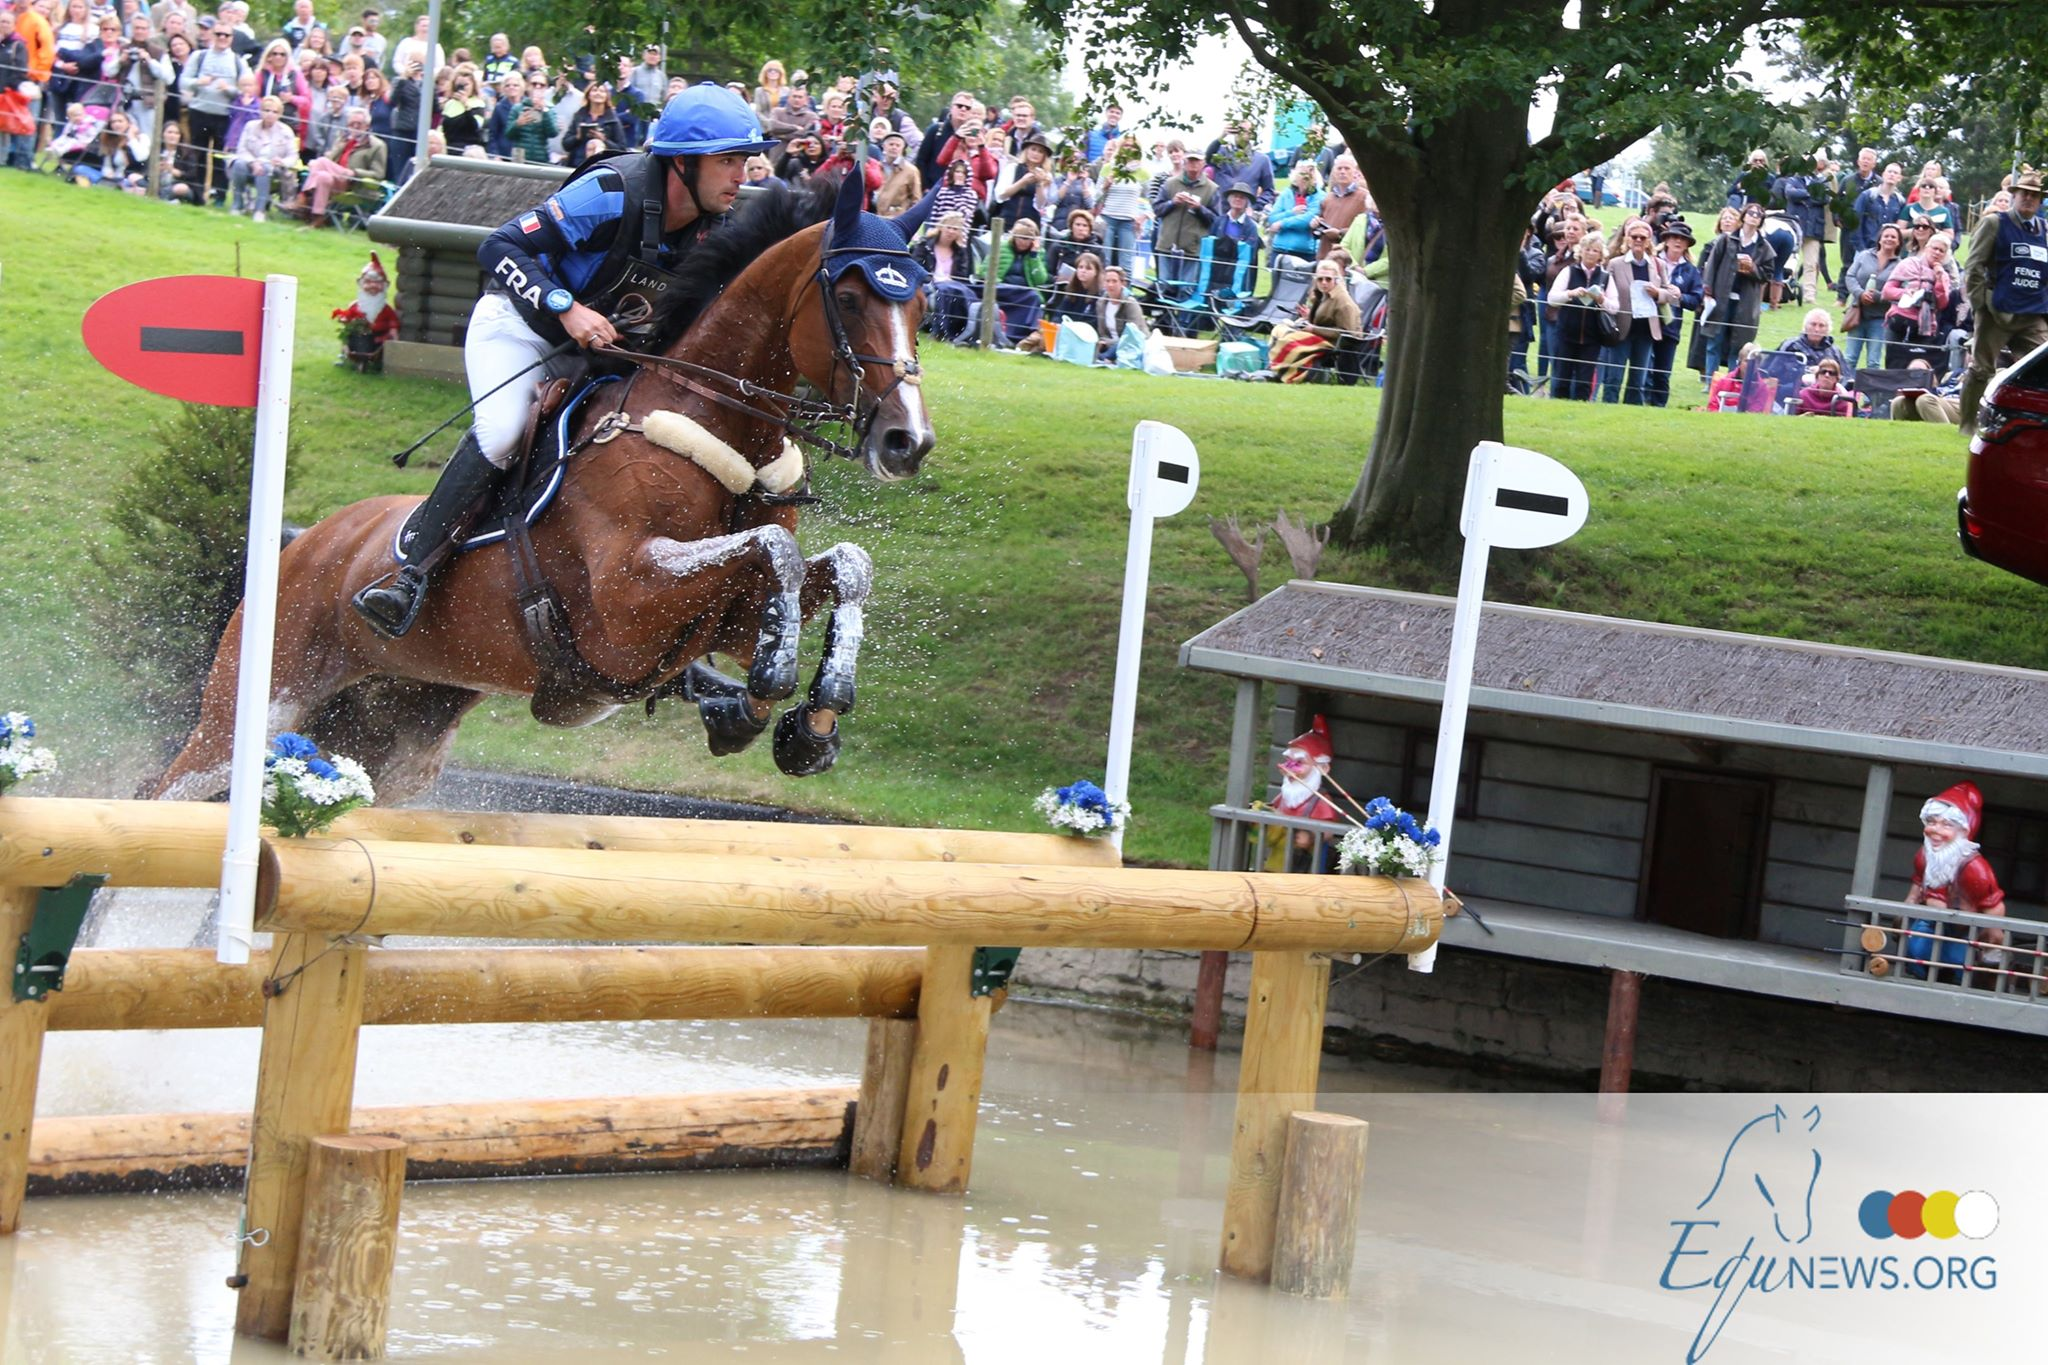 Land Rover Burghley Horse Trials 2020 afgelast